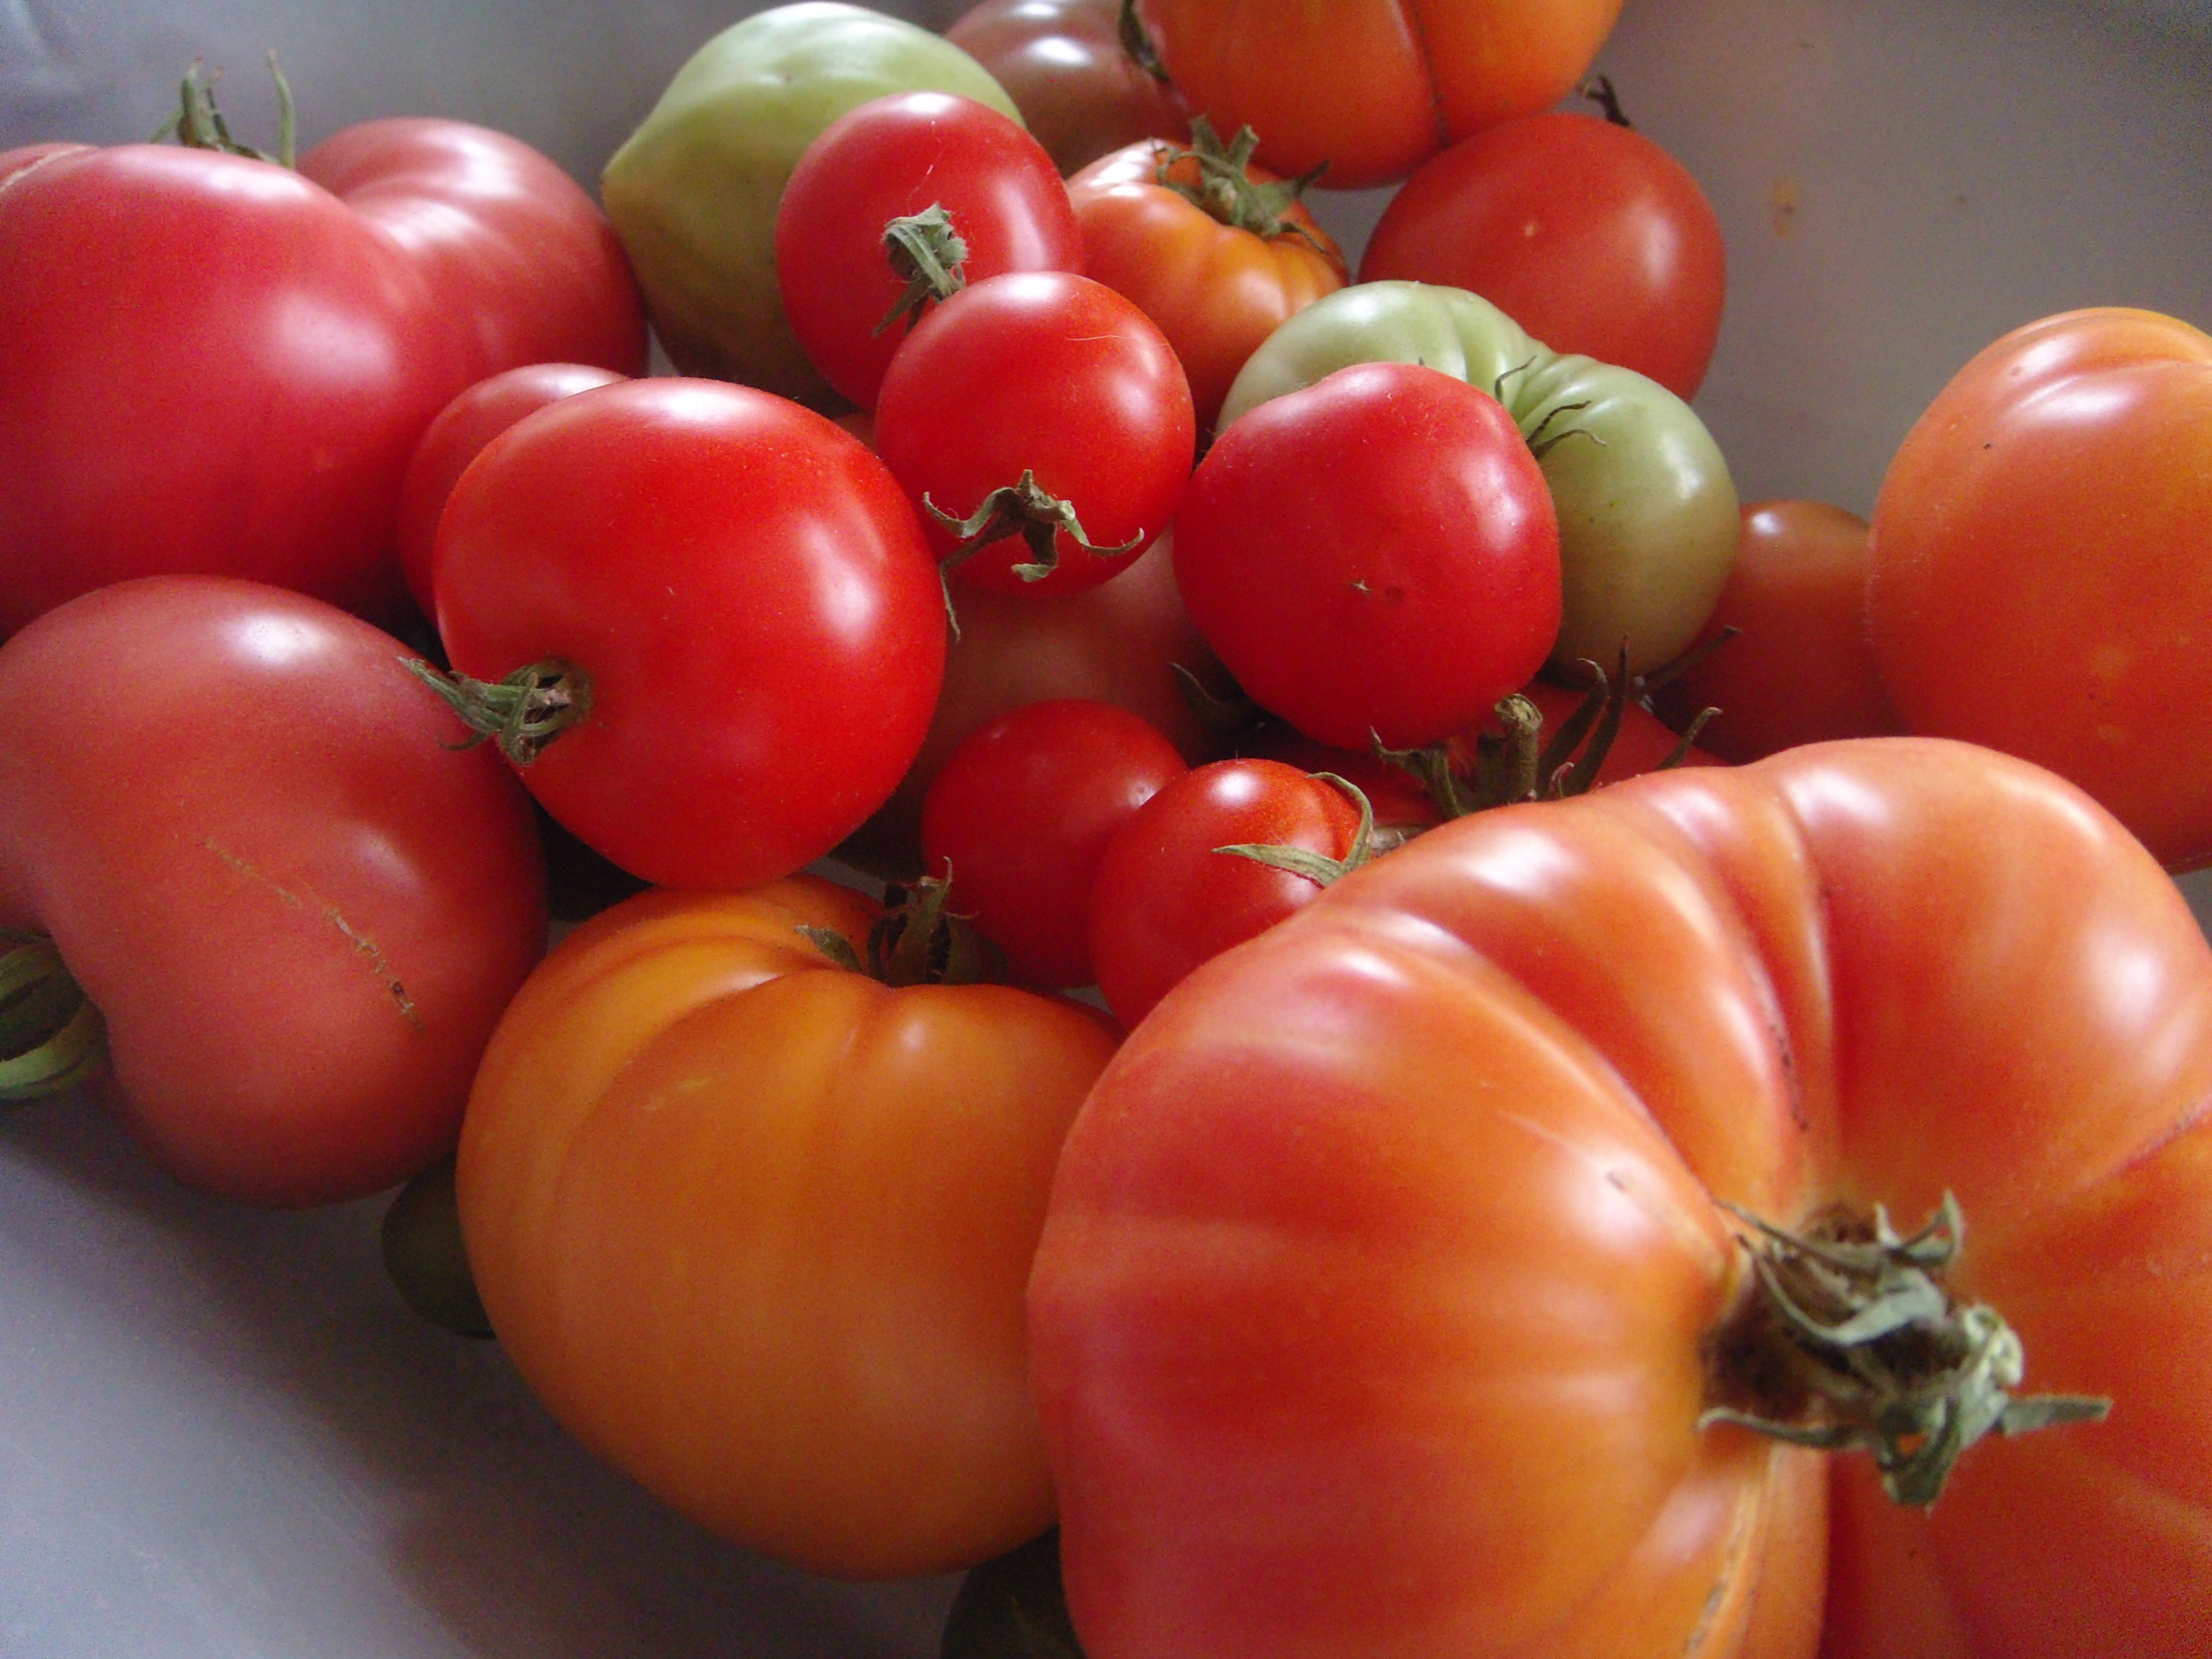 Tomato harvest from the last week of 2013 season.